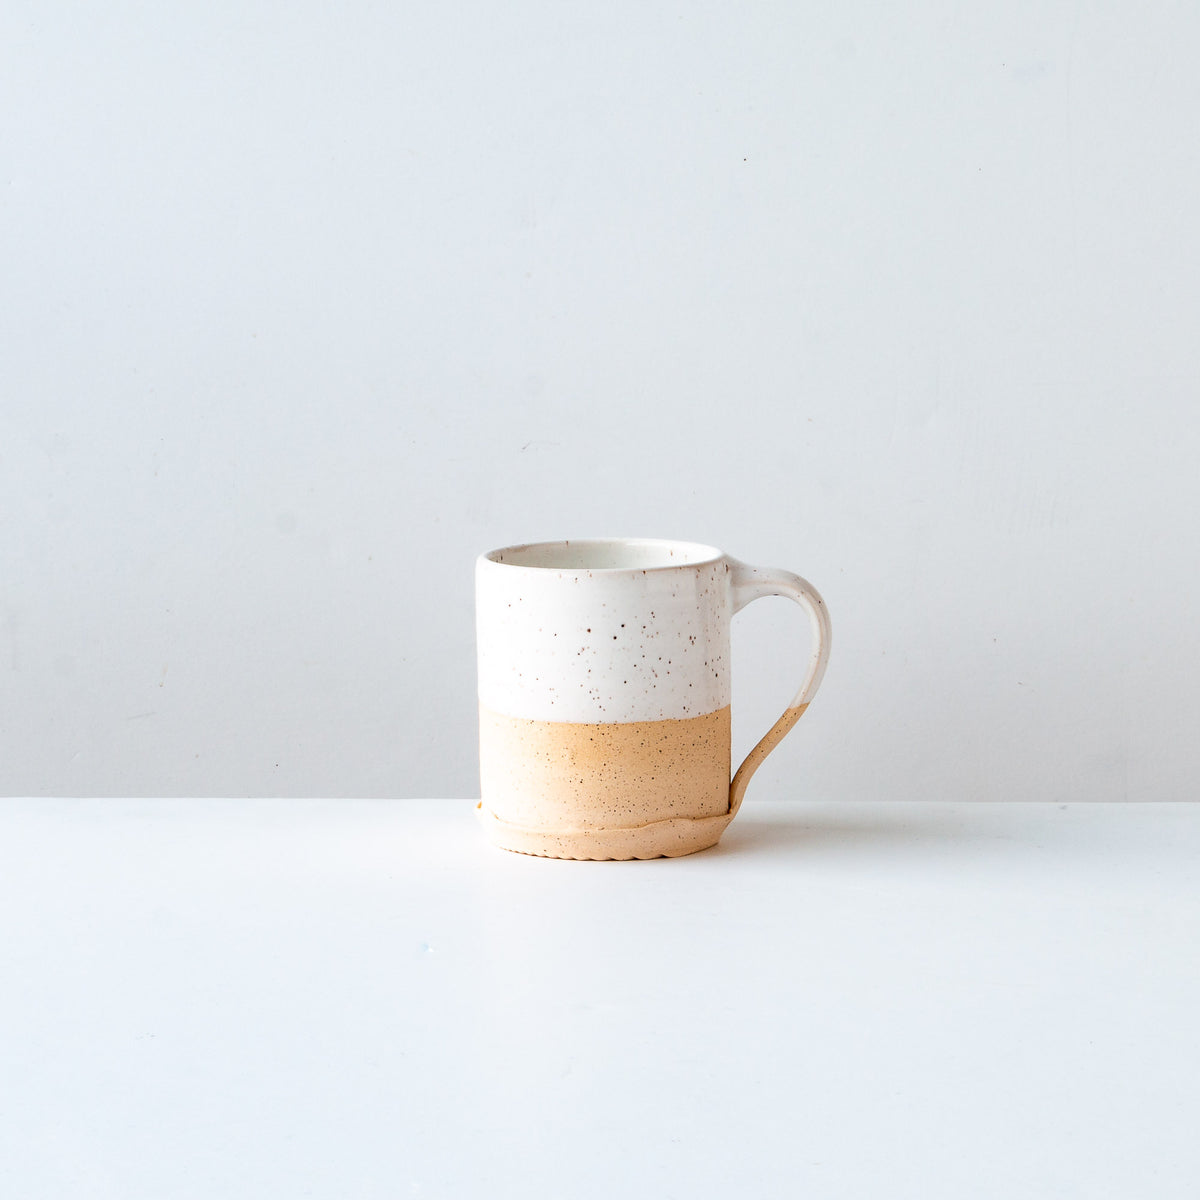 White Glaze - Handcrafted Speckled Stoneware Small Mug - Sold by Chic & Basta